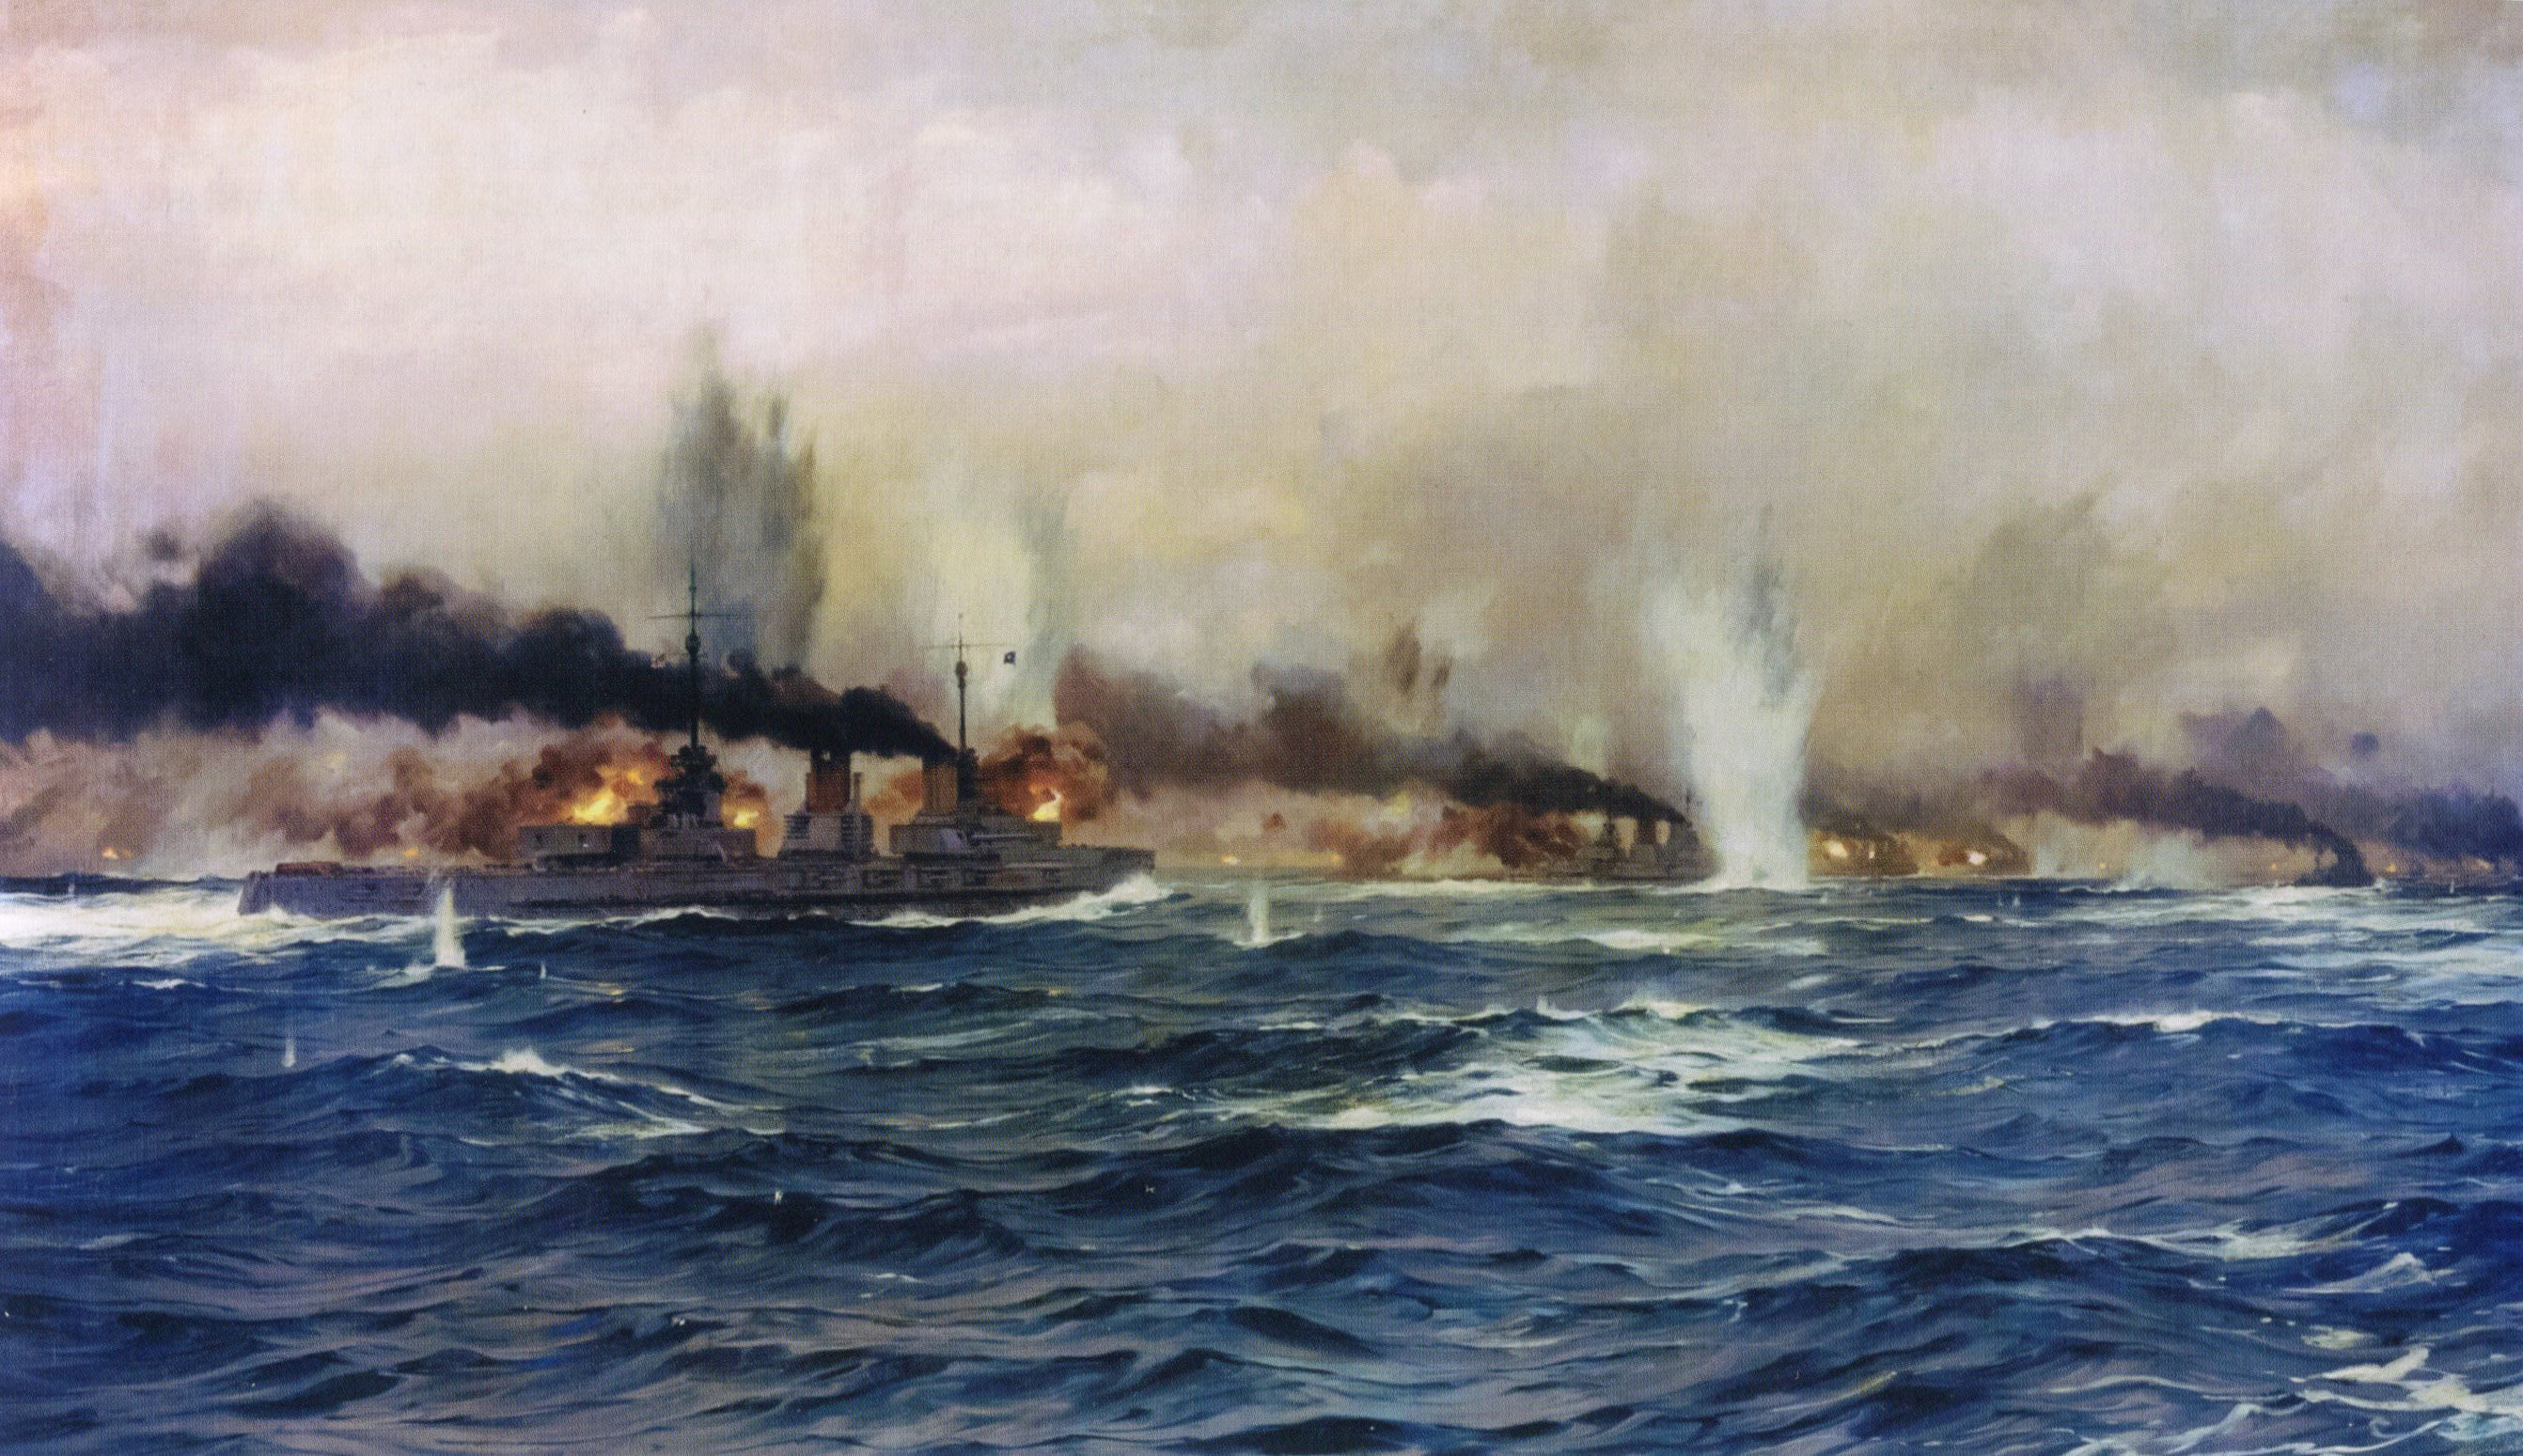 Admiral Hipper's replacement Flagship at the Battle of Jutland 31st May 1916, SMS Moltke: picture by Claus Bergen